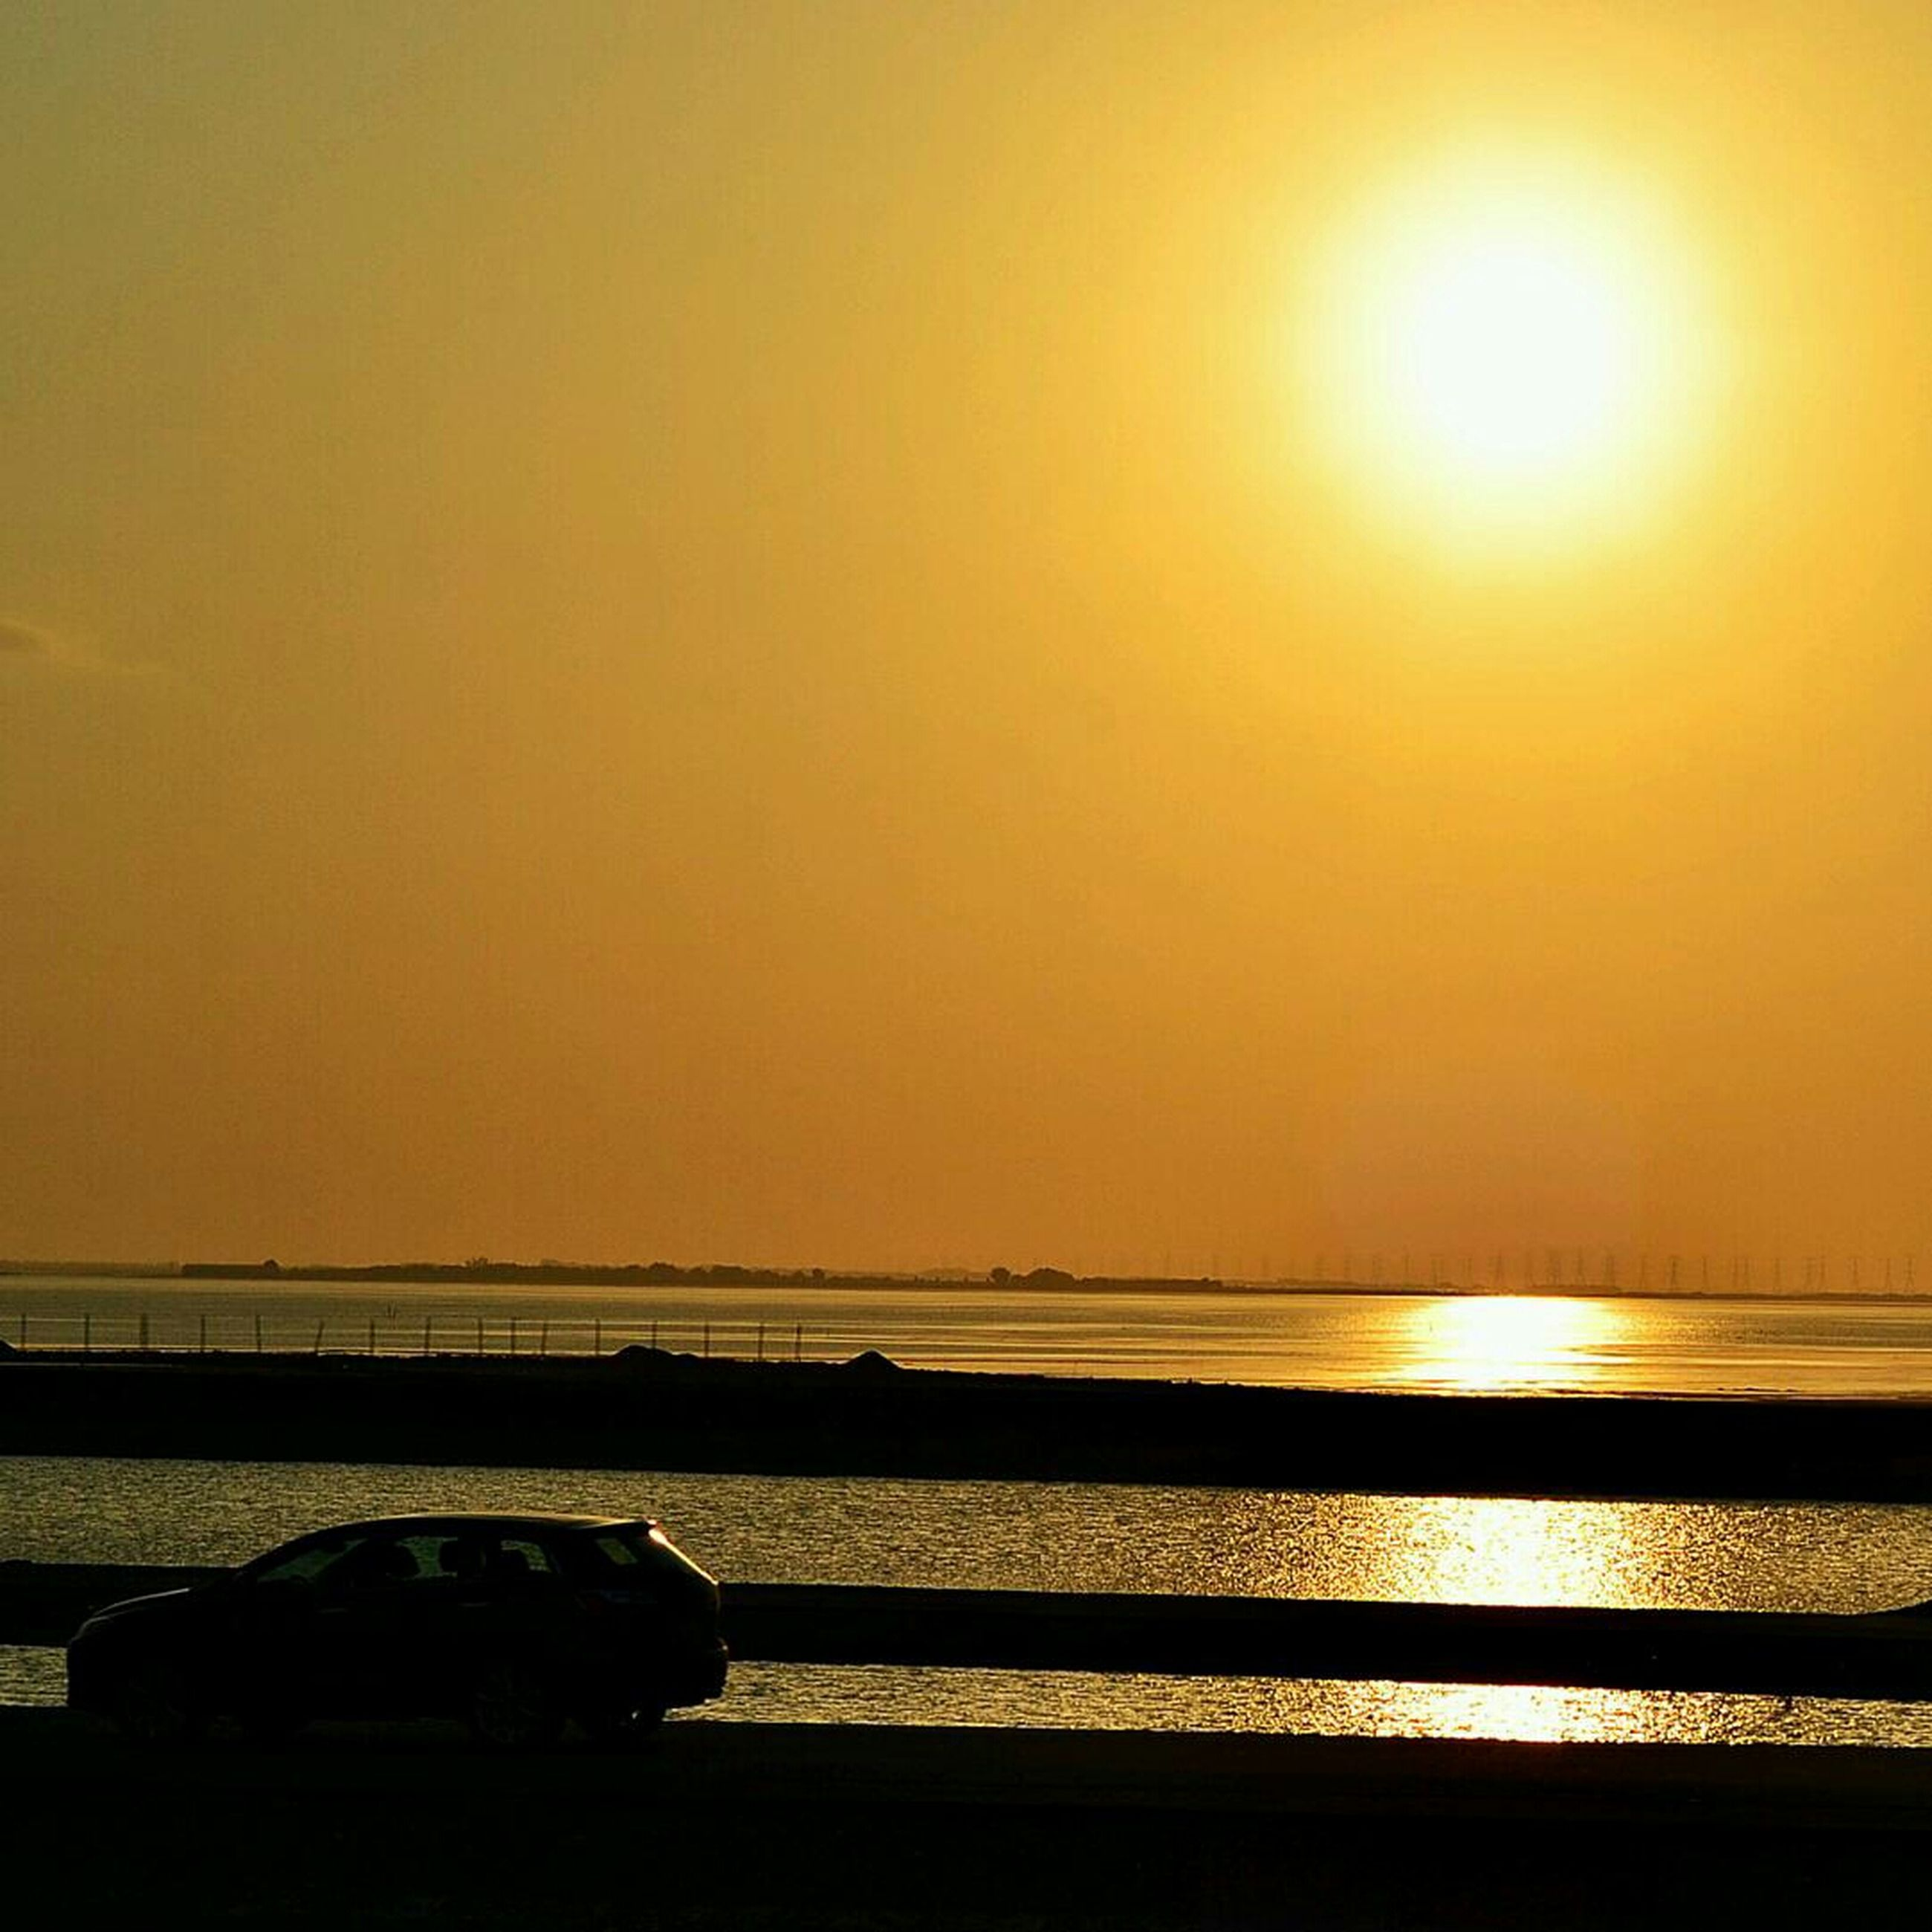 sunset, sun, orange color, sea, clear sky, sunlight, water, scenics, copy space, tranquility, tranquil scene, horizon over water, sunbeam, beauty in nature, lens flare, reflection, nature, transportation, beach, idyllic